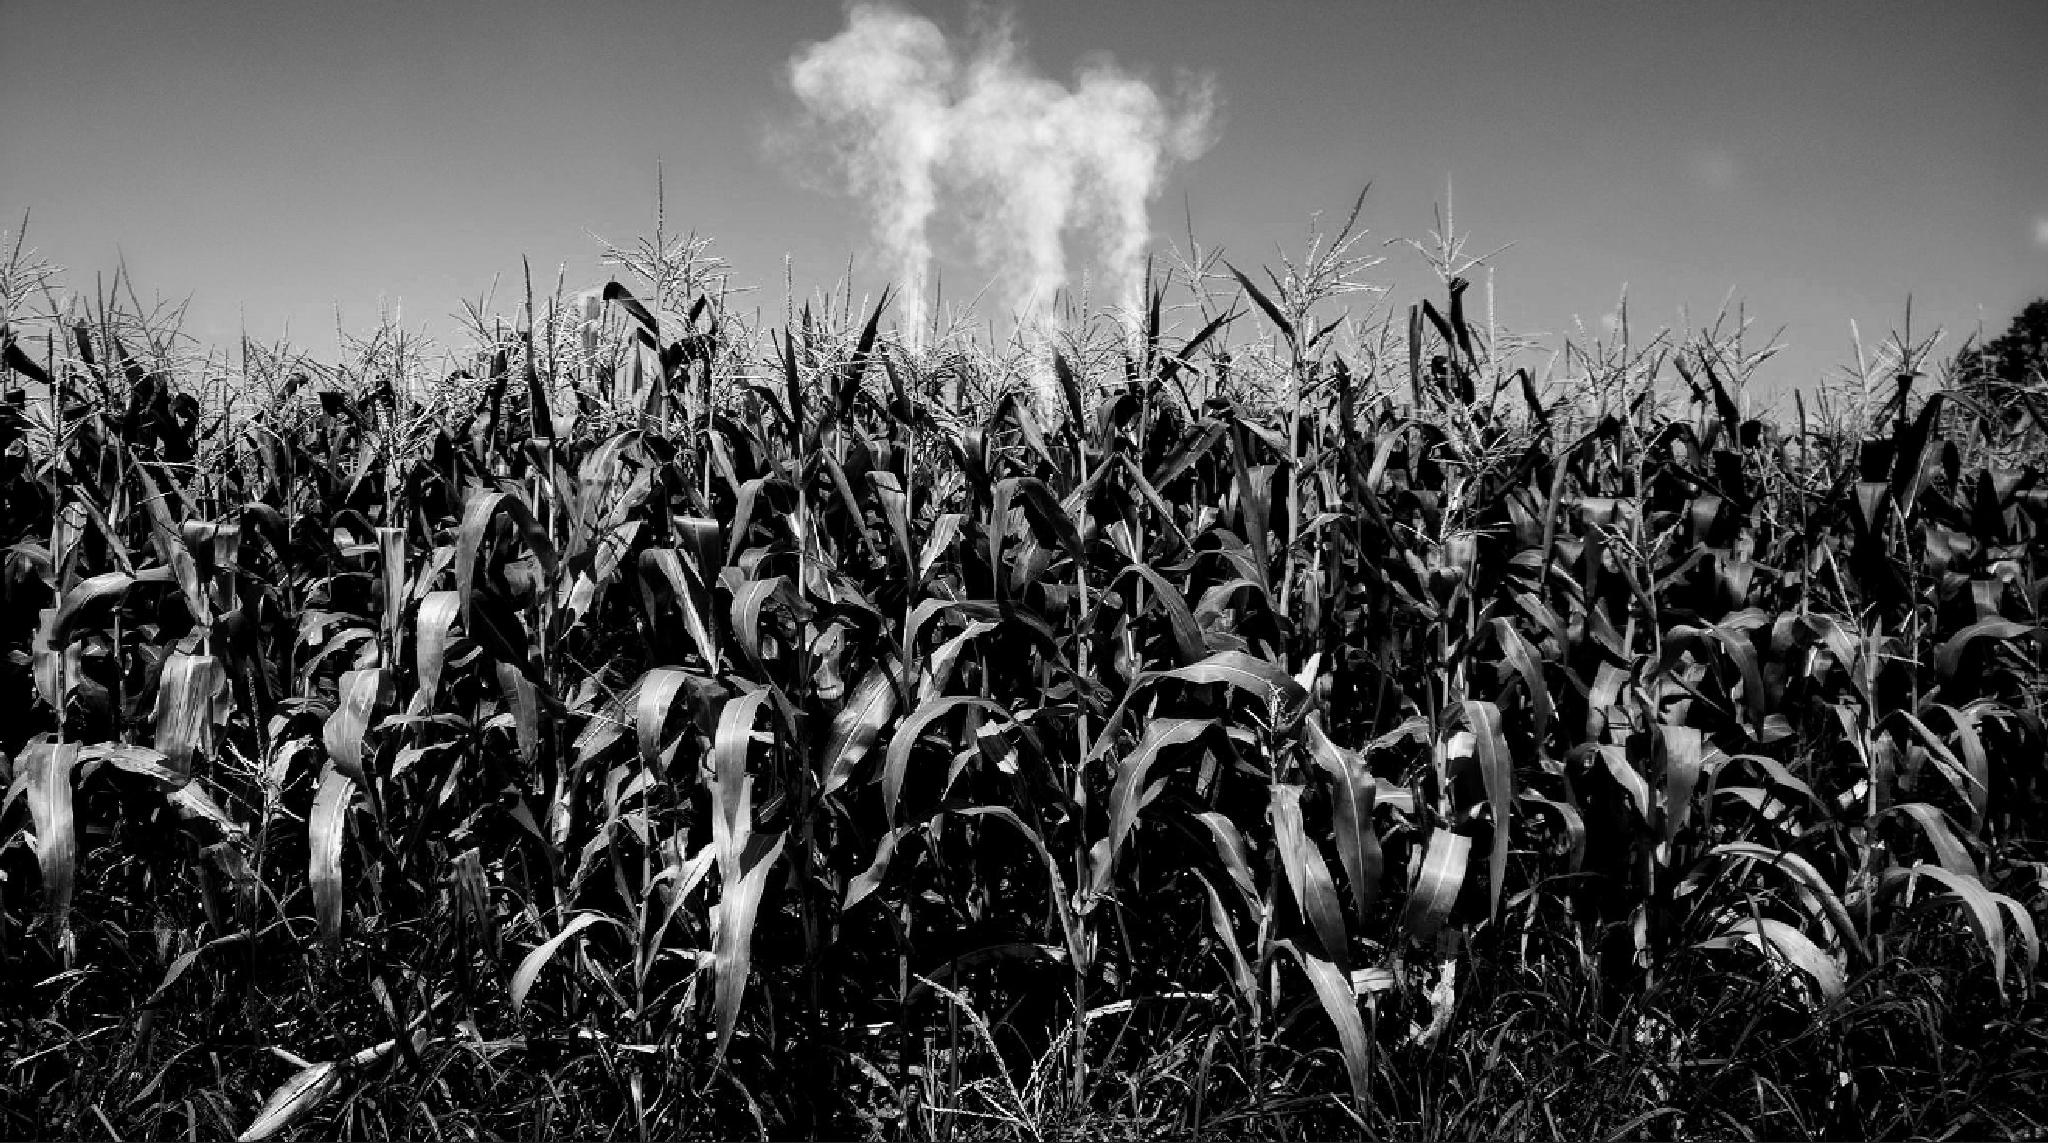 Smoke over thr crops by marie.short.18